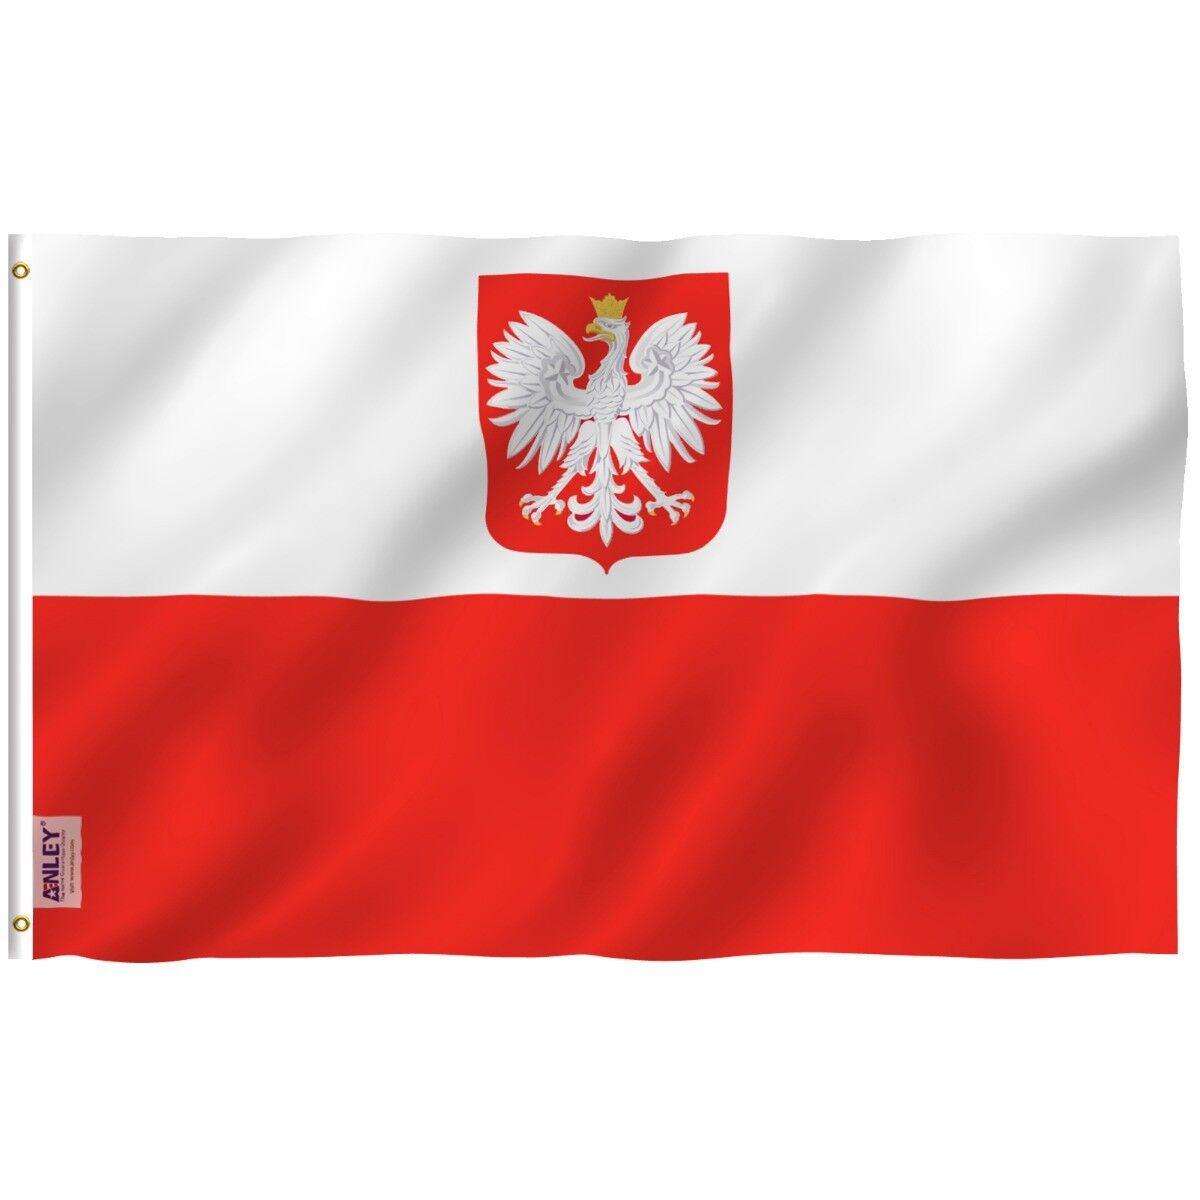 Anley Fly Breeze 3x5 Foot Poland State Ensign Flag Polish Ea